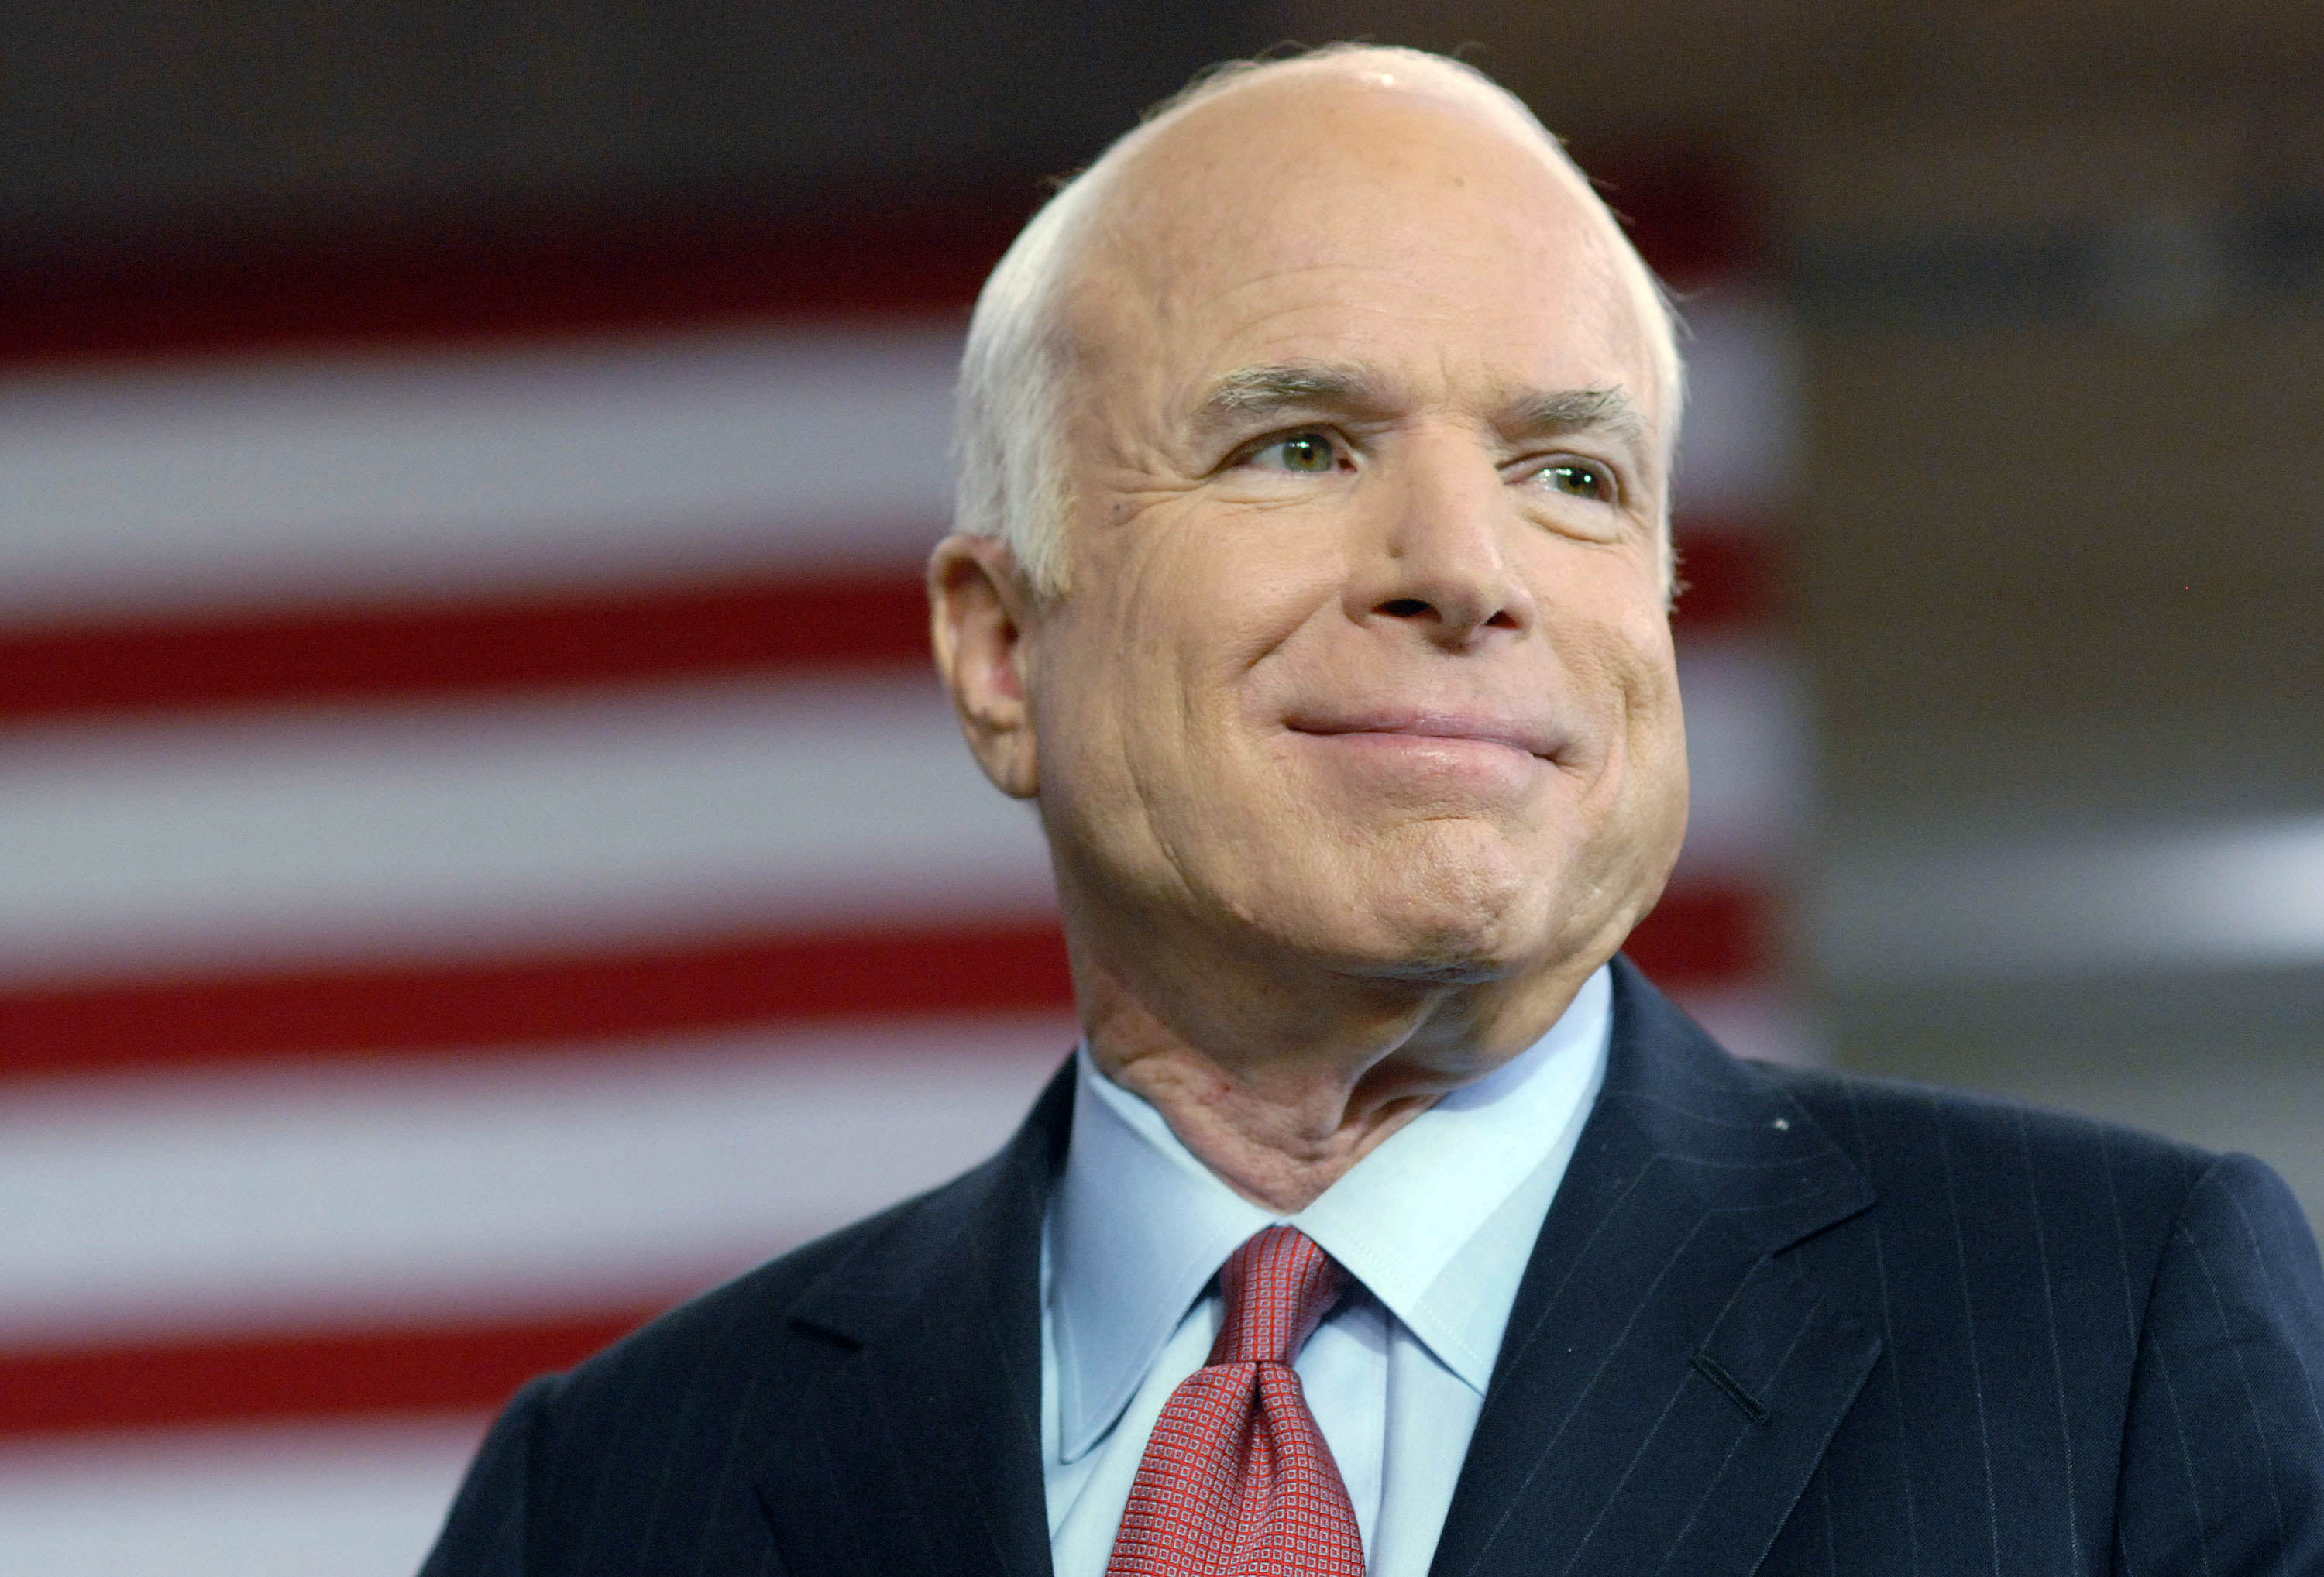 Republican Presidential Candidate Sen. John McCain (R-AZ) speaks at a Town Hall Meeting while on the campaign trail in the Toyota Arena August 12, 2008 in York, Pennsylvania. Over one thousand people attended the Town Hall.